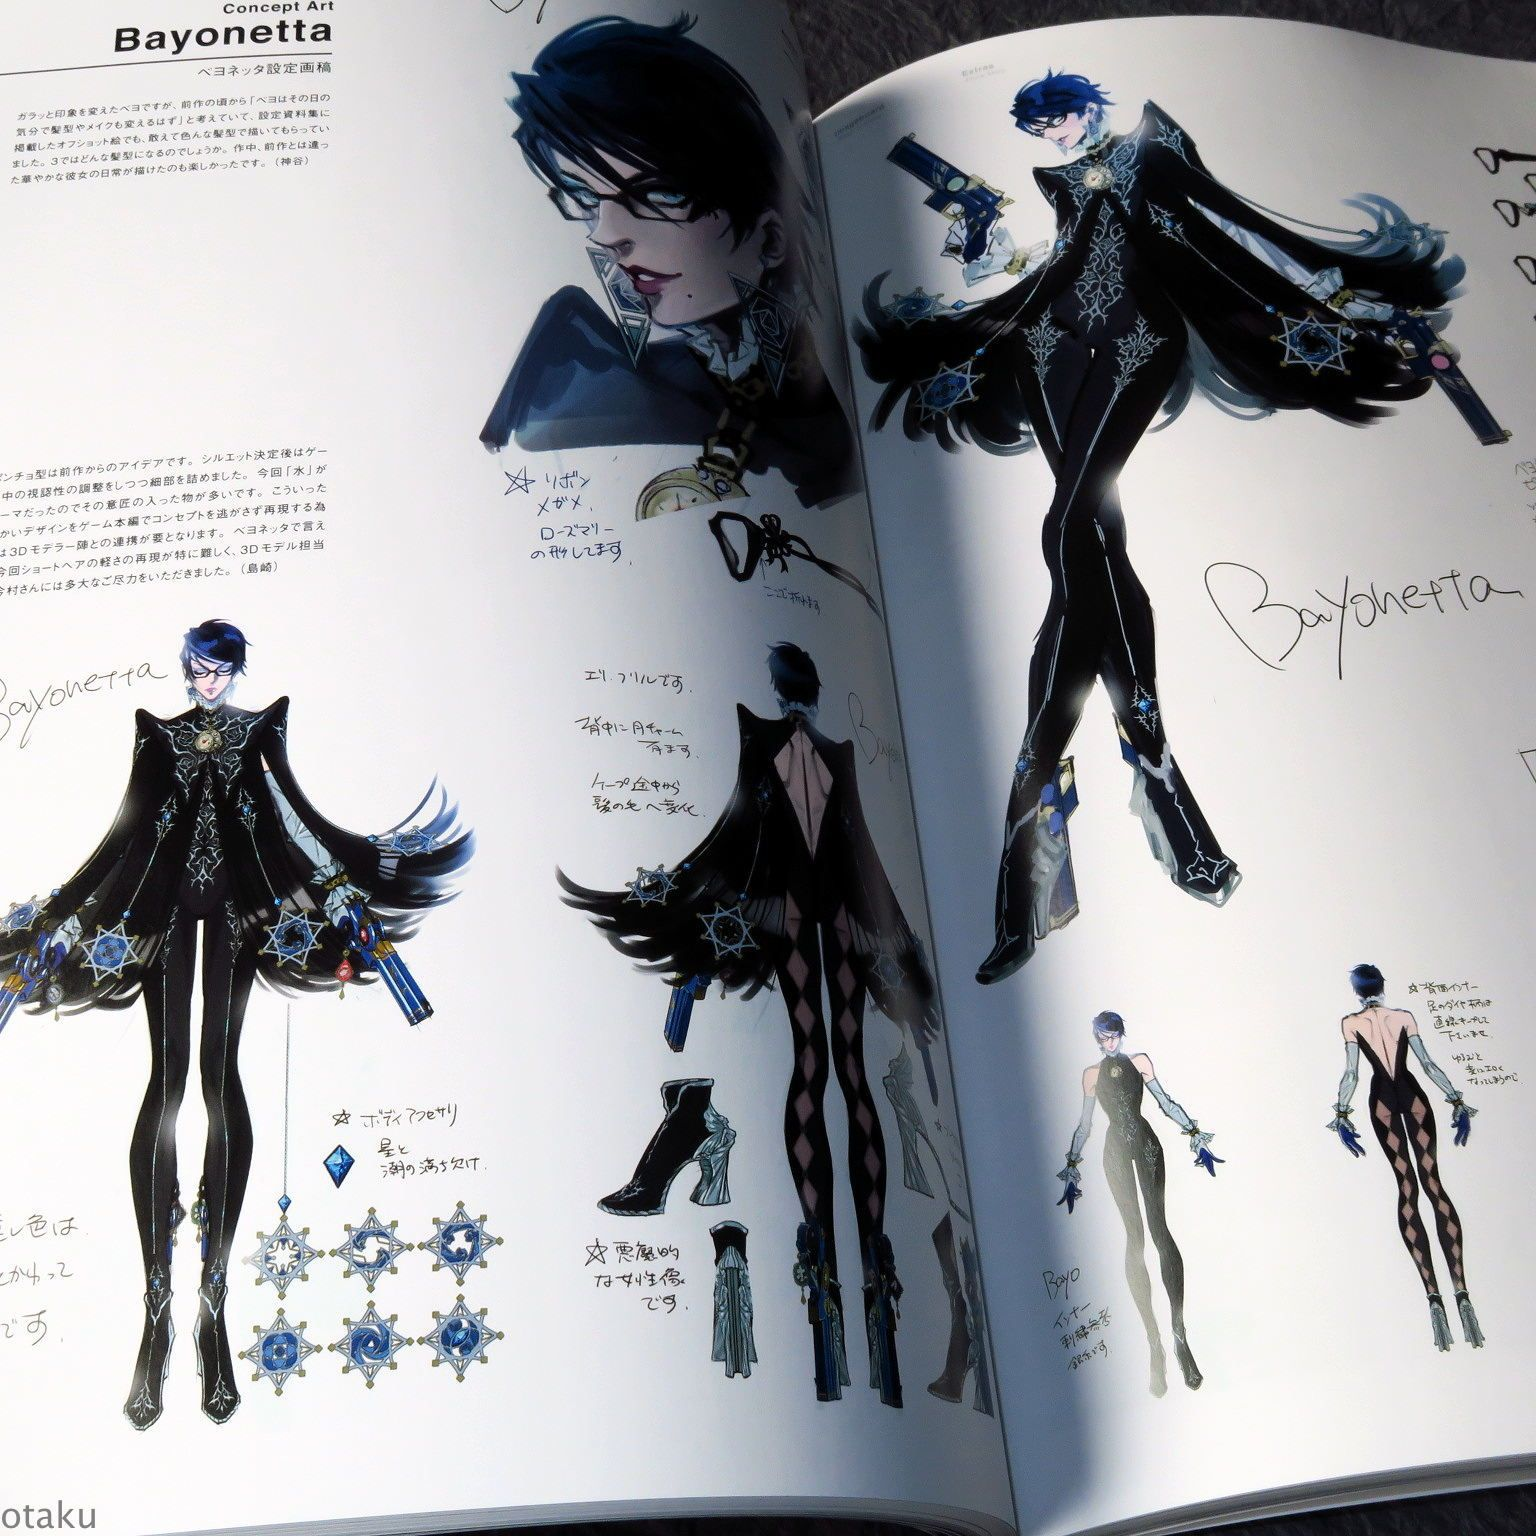 The Eyes Of Bayonetta 2 Official ArtBook Otakusearch Art Book